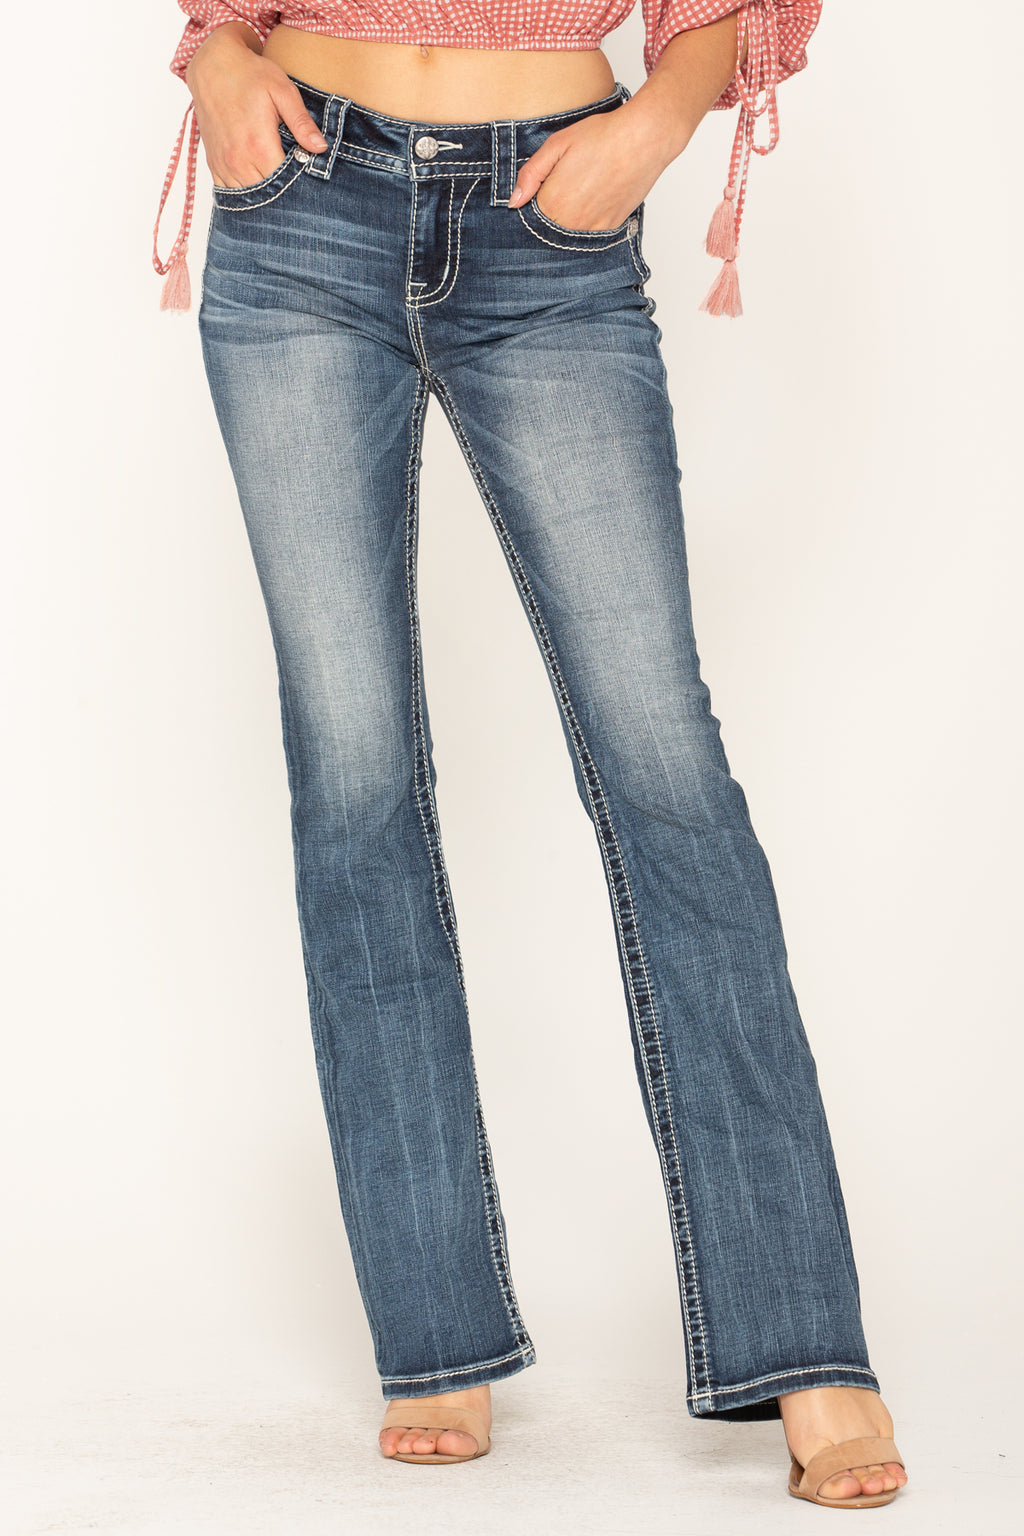 59c7a13afa8835 ALLURING ROMANCE BOOTCUT JEANS - front